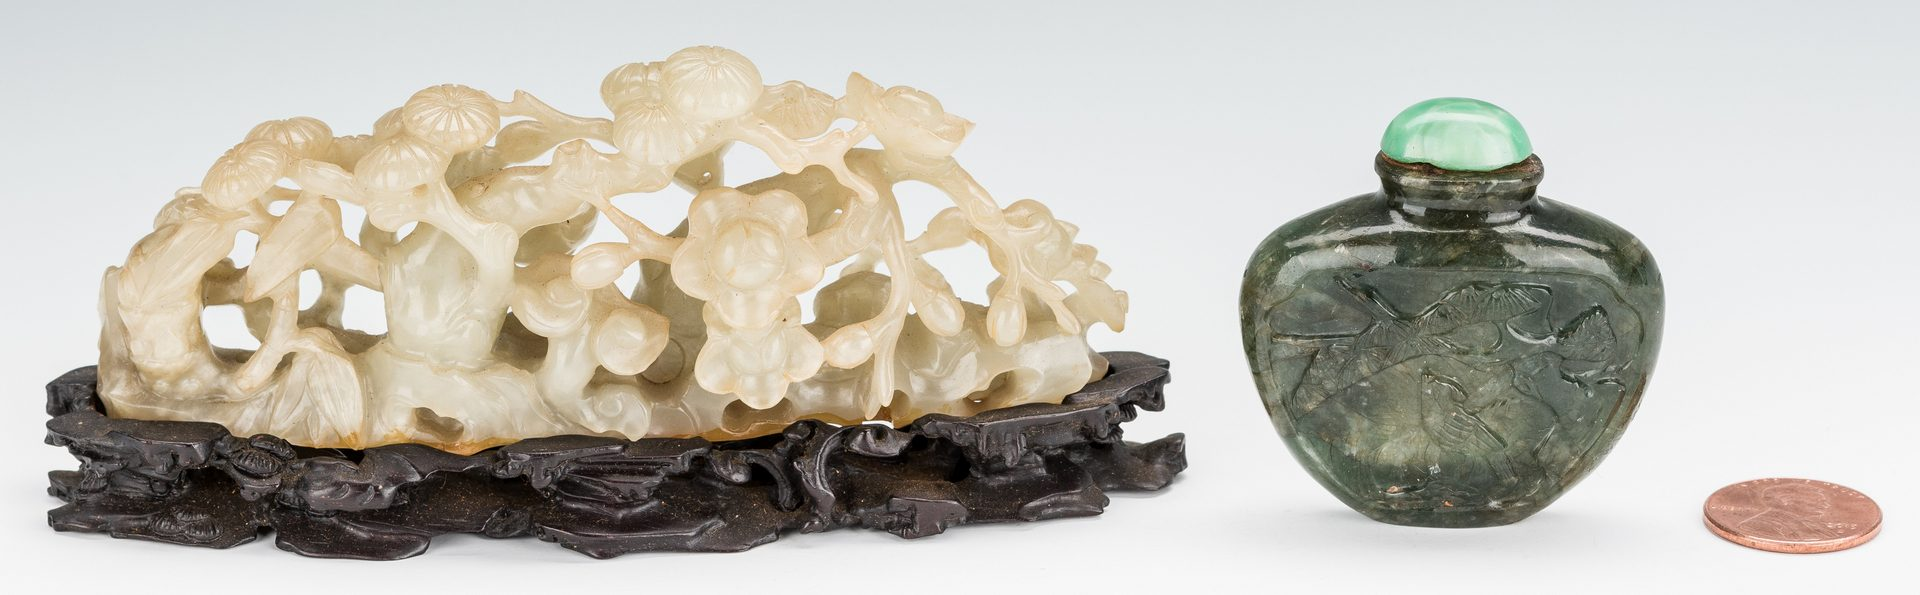 Lot 12: Chinese Carved Jade Boulder and Snuff Bottle